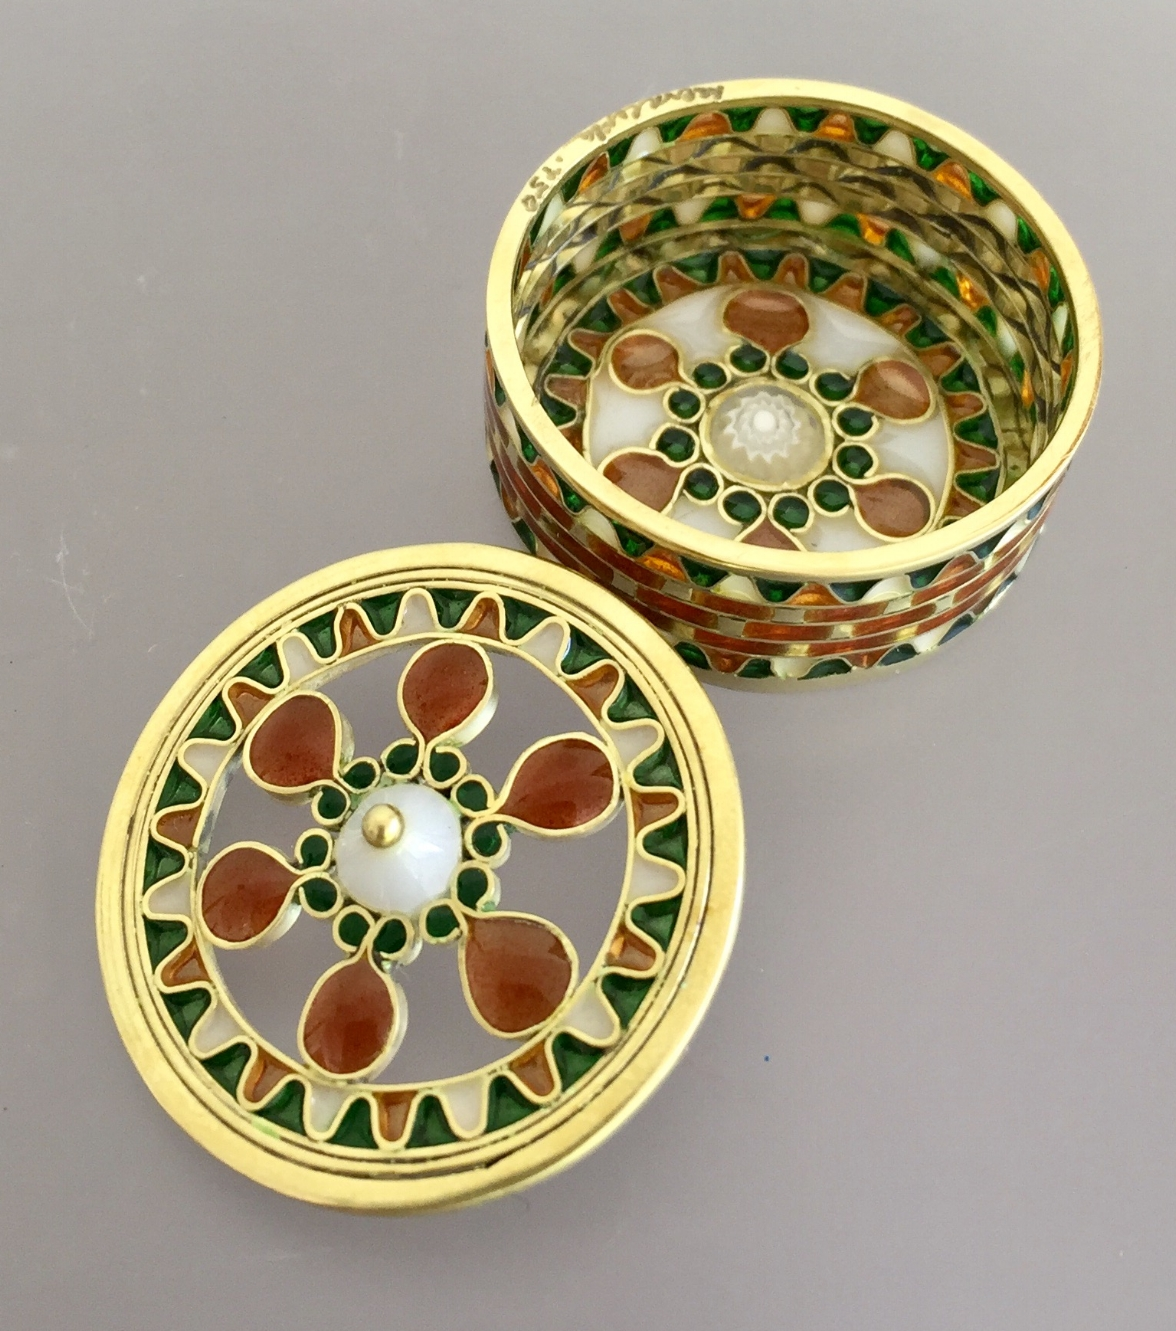 Golden Treasure Box - County Cork Open Work 18K Gold Button Lid with Optional Container Base